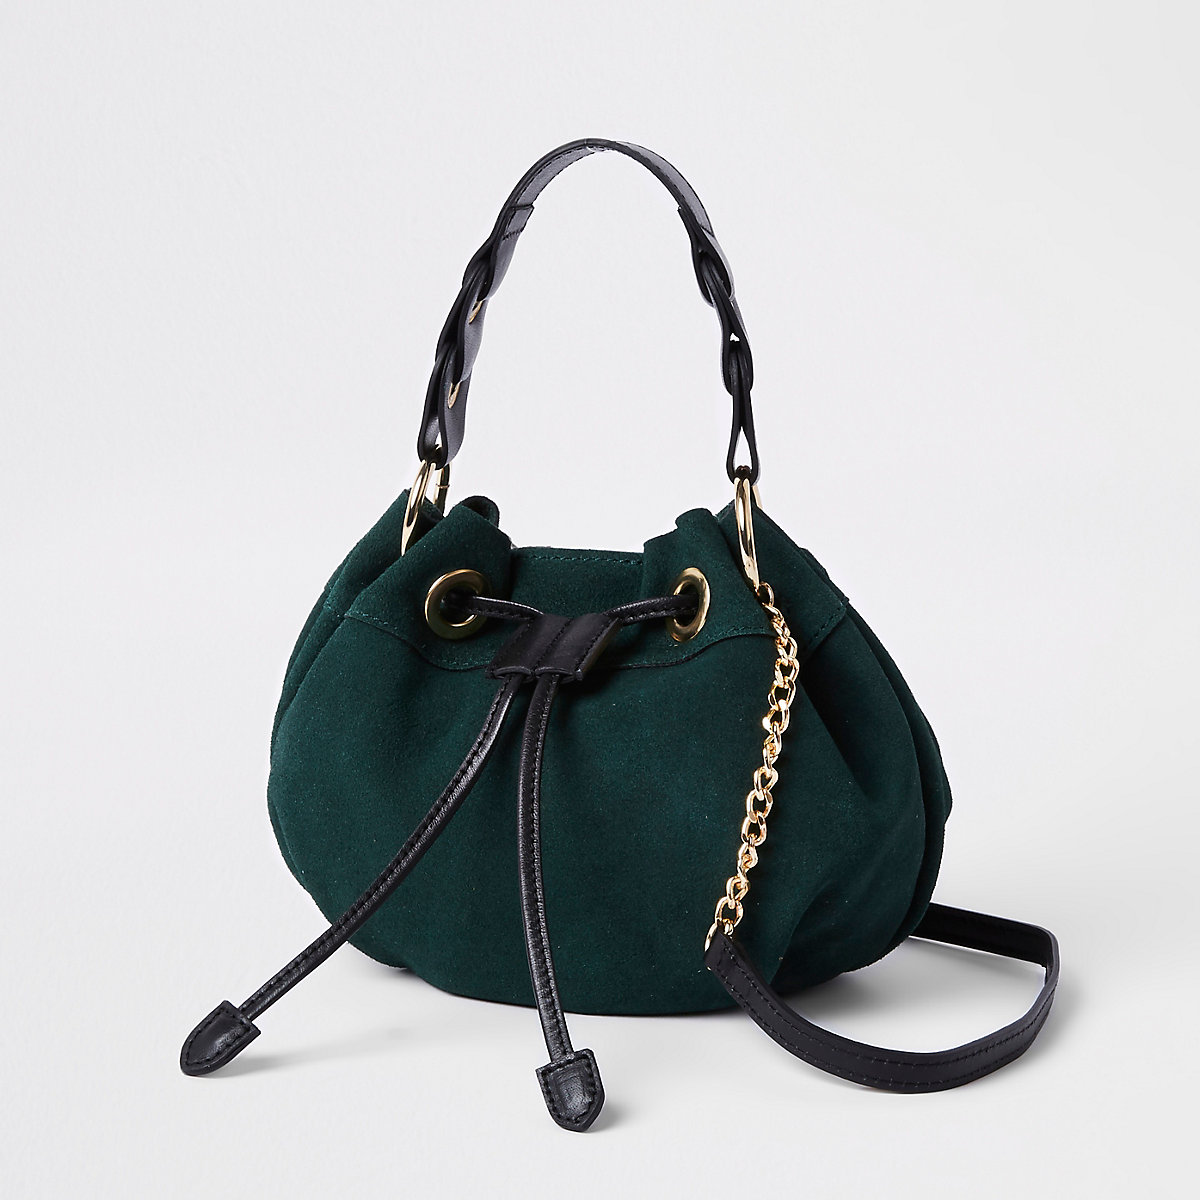 Green suede mini duffle cross body bag